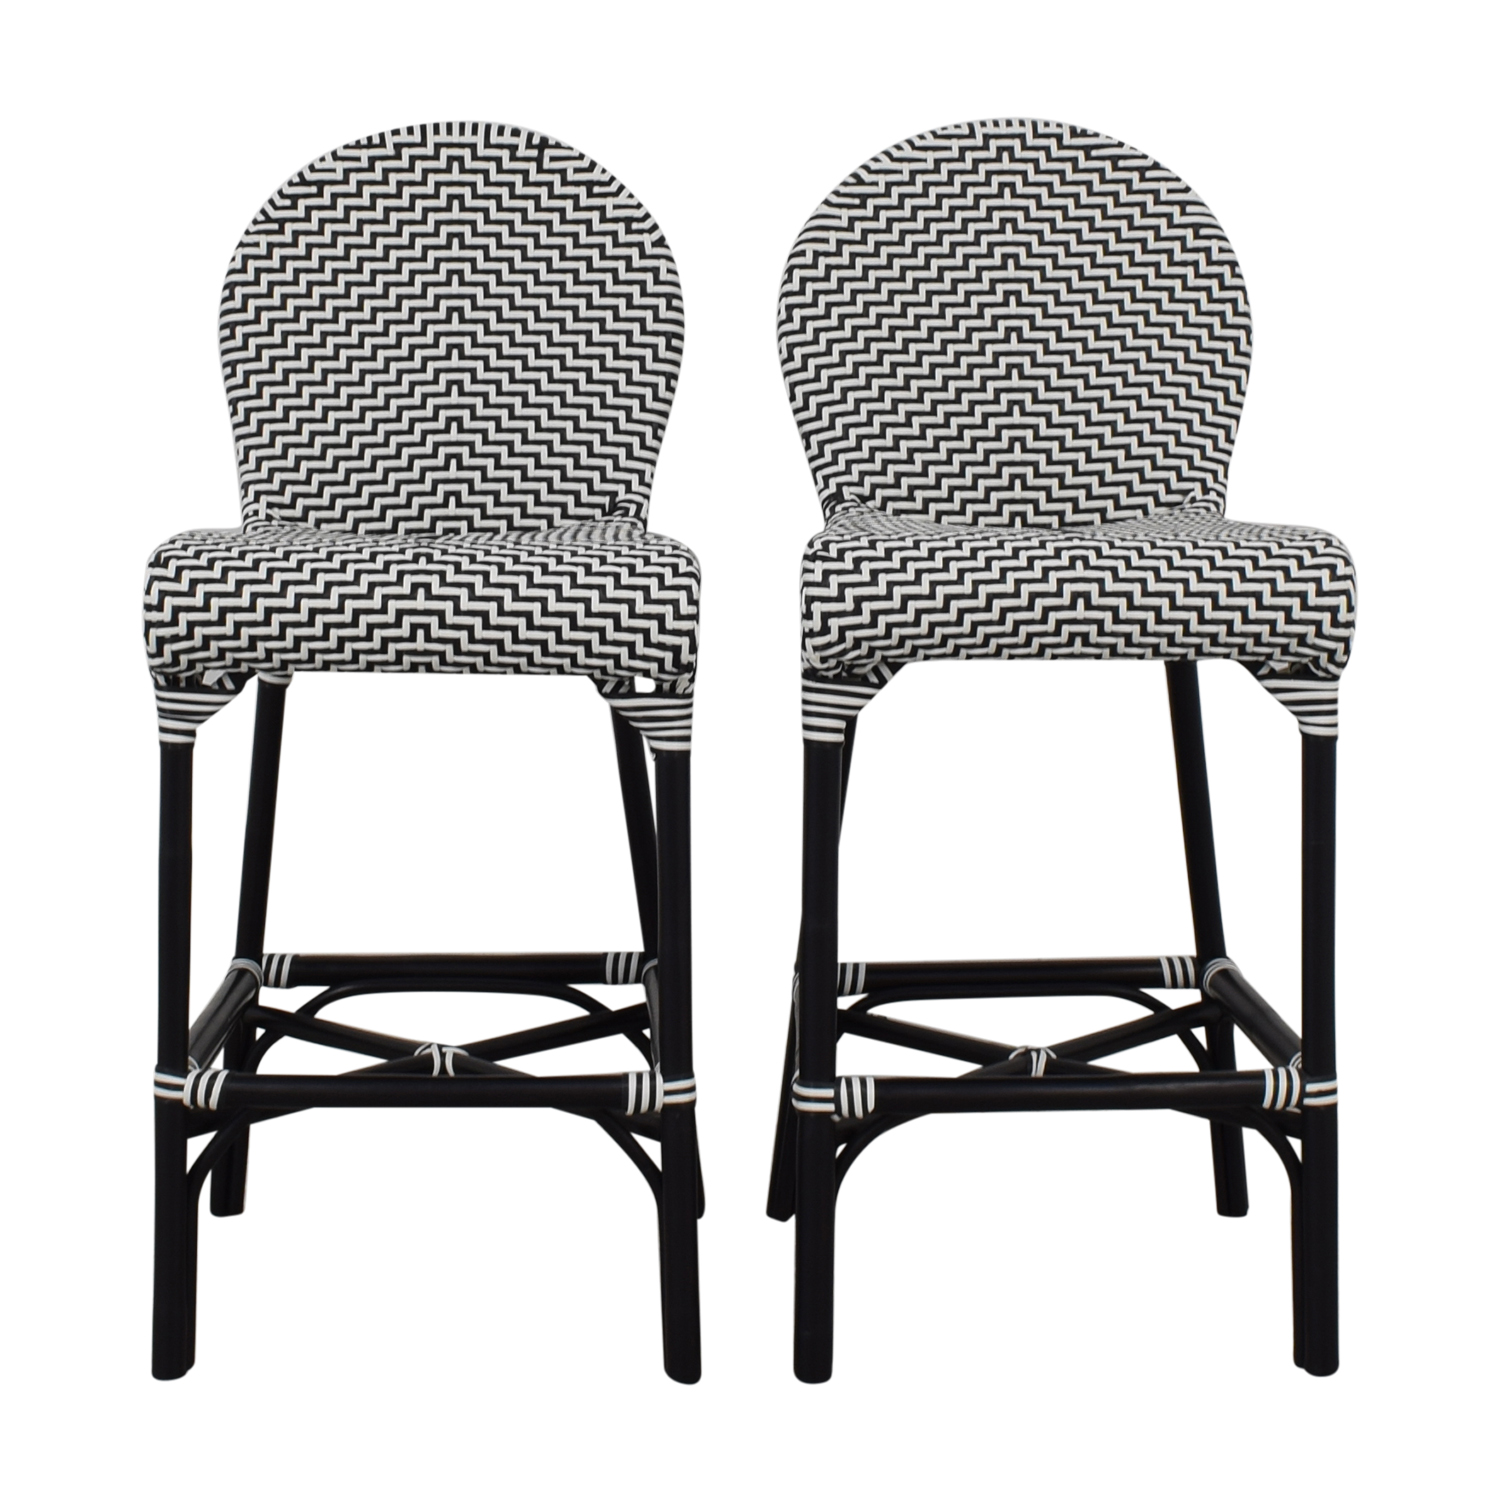 CB2 CB2 Indoor Outdoor Stools black & white